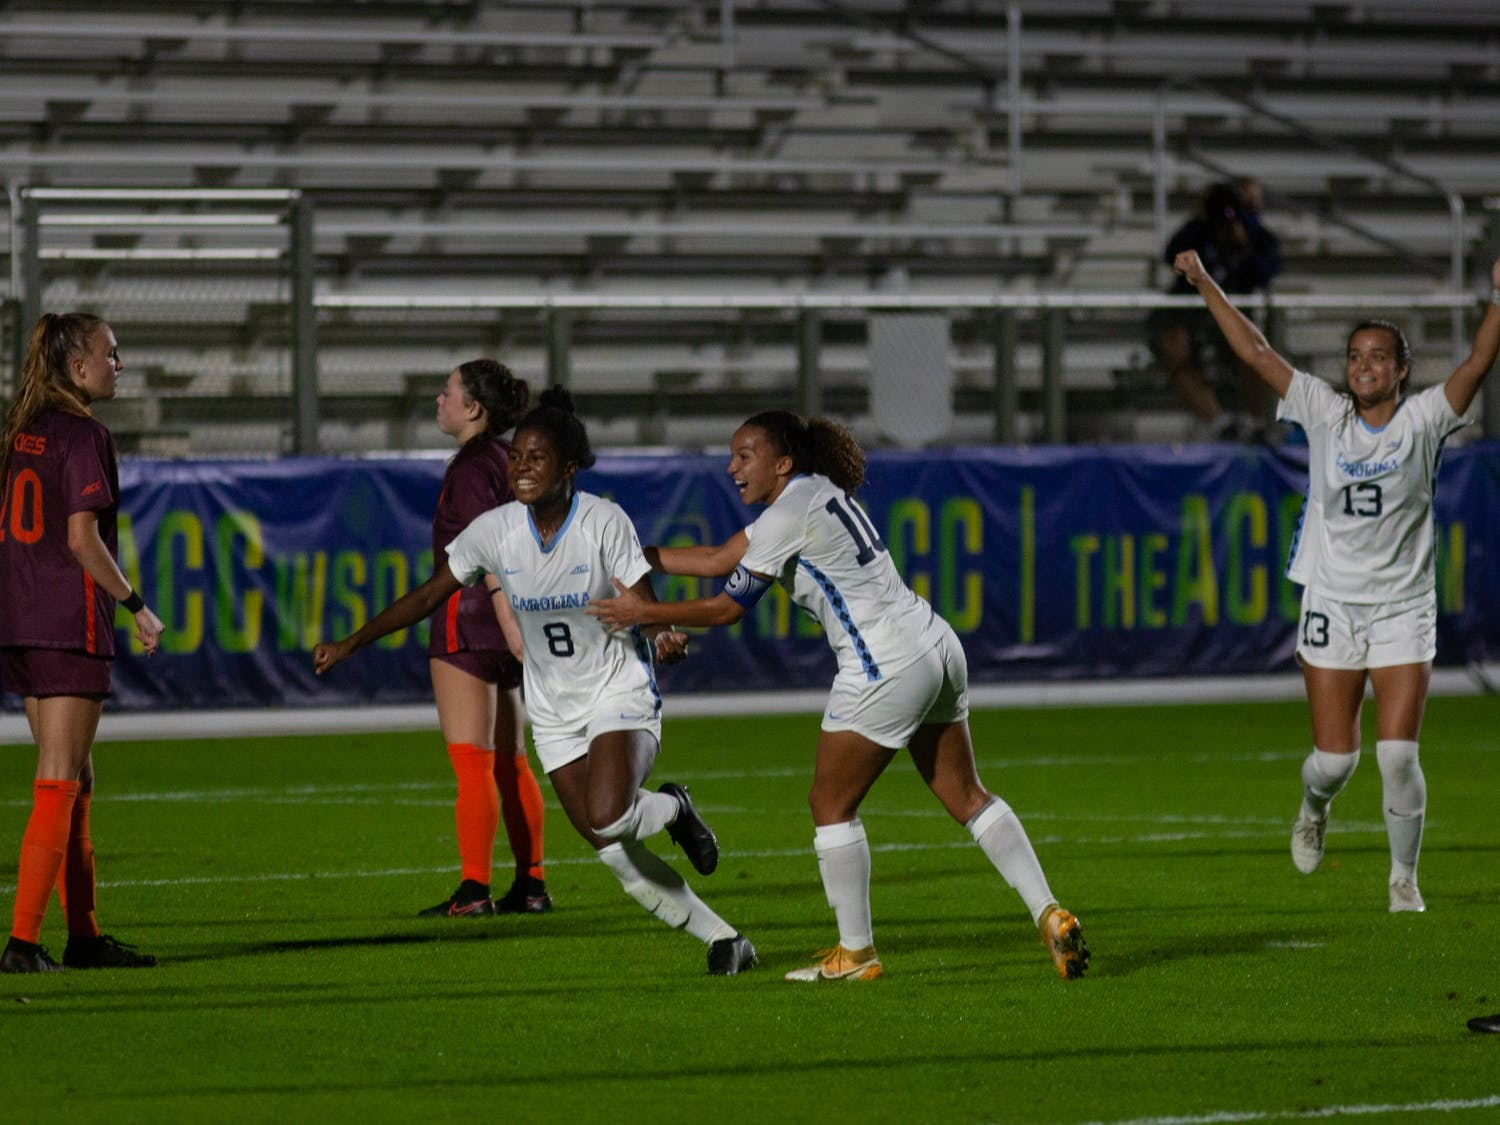 Members of the UNC women's soccer team celebrate a goal made by junior midfielder Brianna Pinto (8). The Tar Heels beat the Hokies 1-0 in the first round of the ACC tournament on Tuesday, Nov. 10 2020 at the WakeMed Soccer Park.